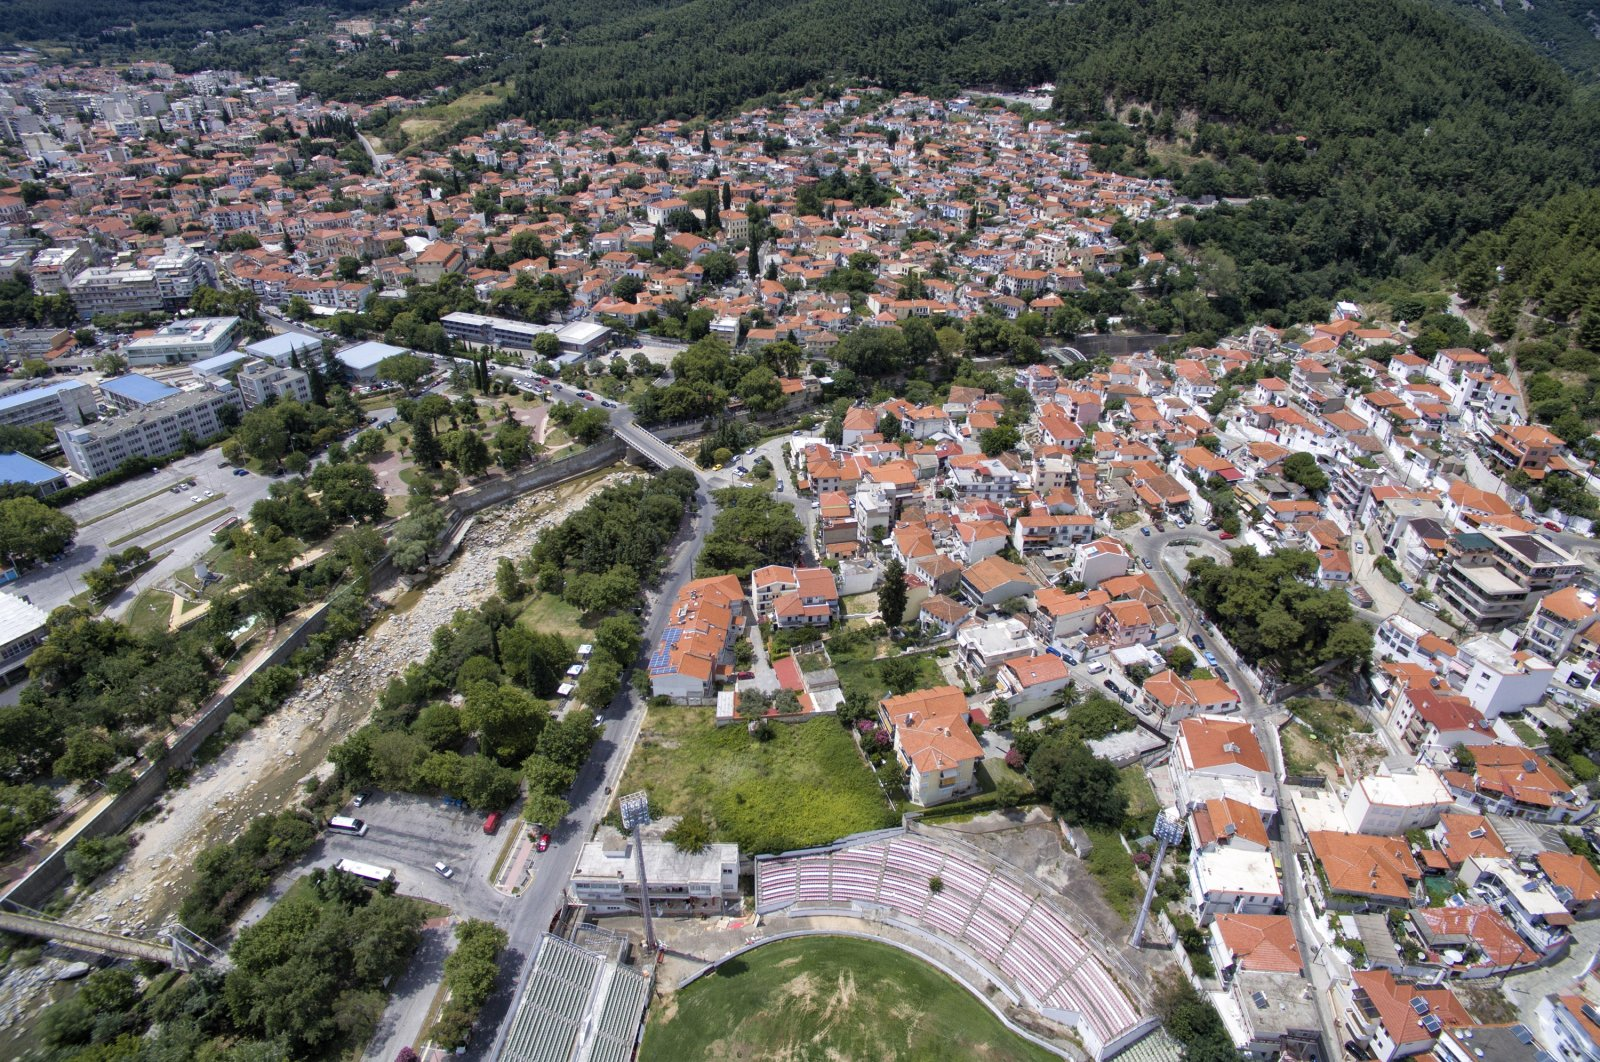 A drone image of the town of Xanthi (İskeçe) in Western Thrace, northeastern Greece, October 19, 2017. (Getty Images)